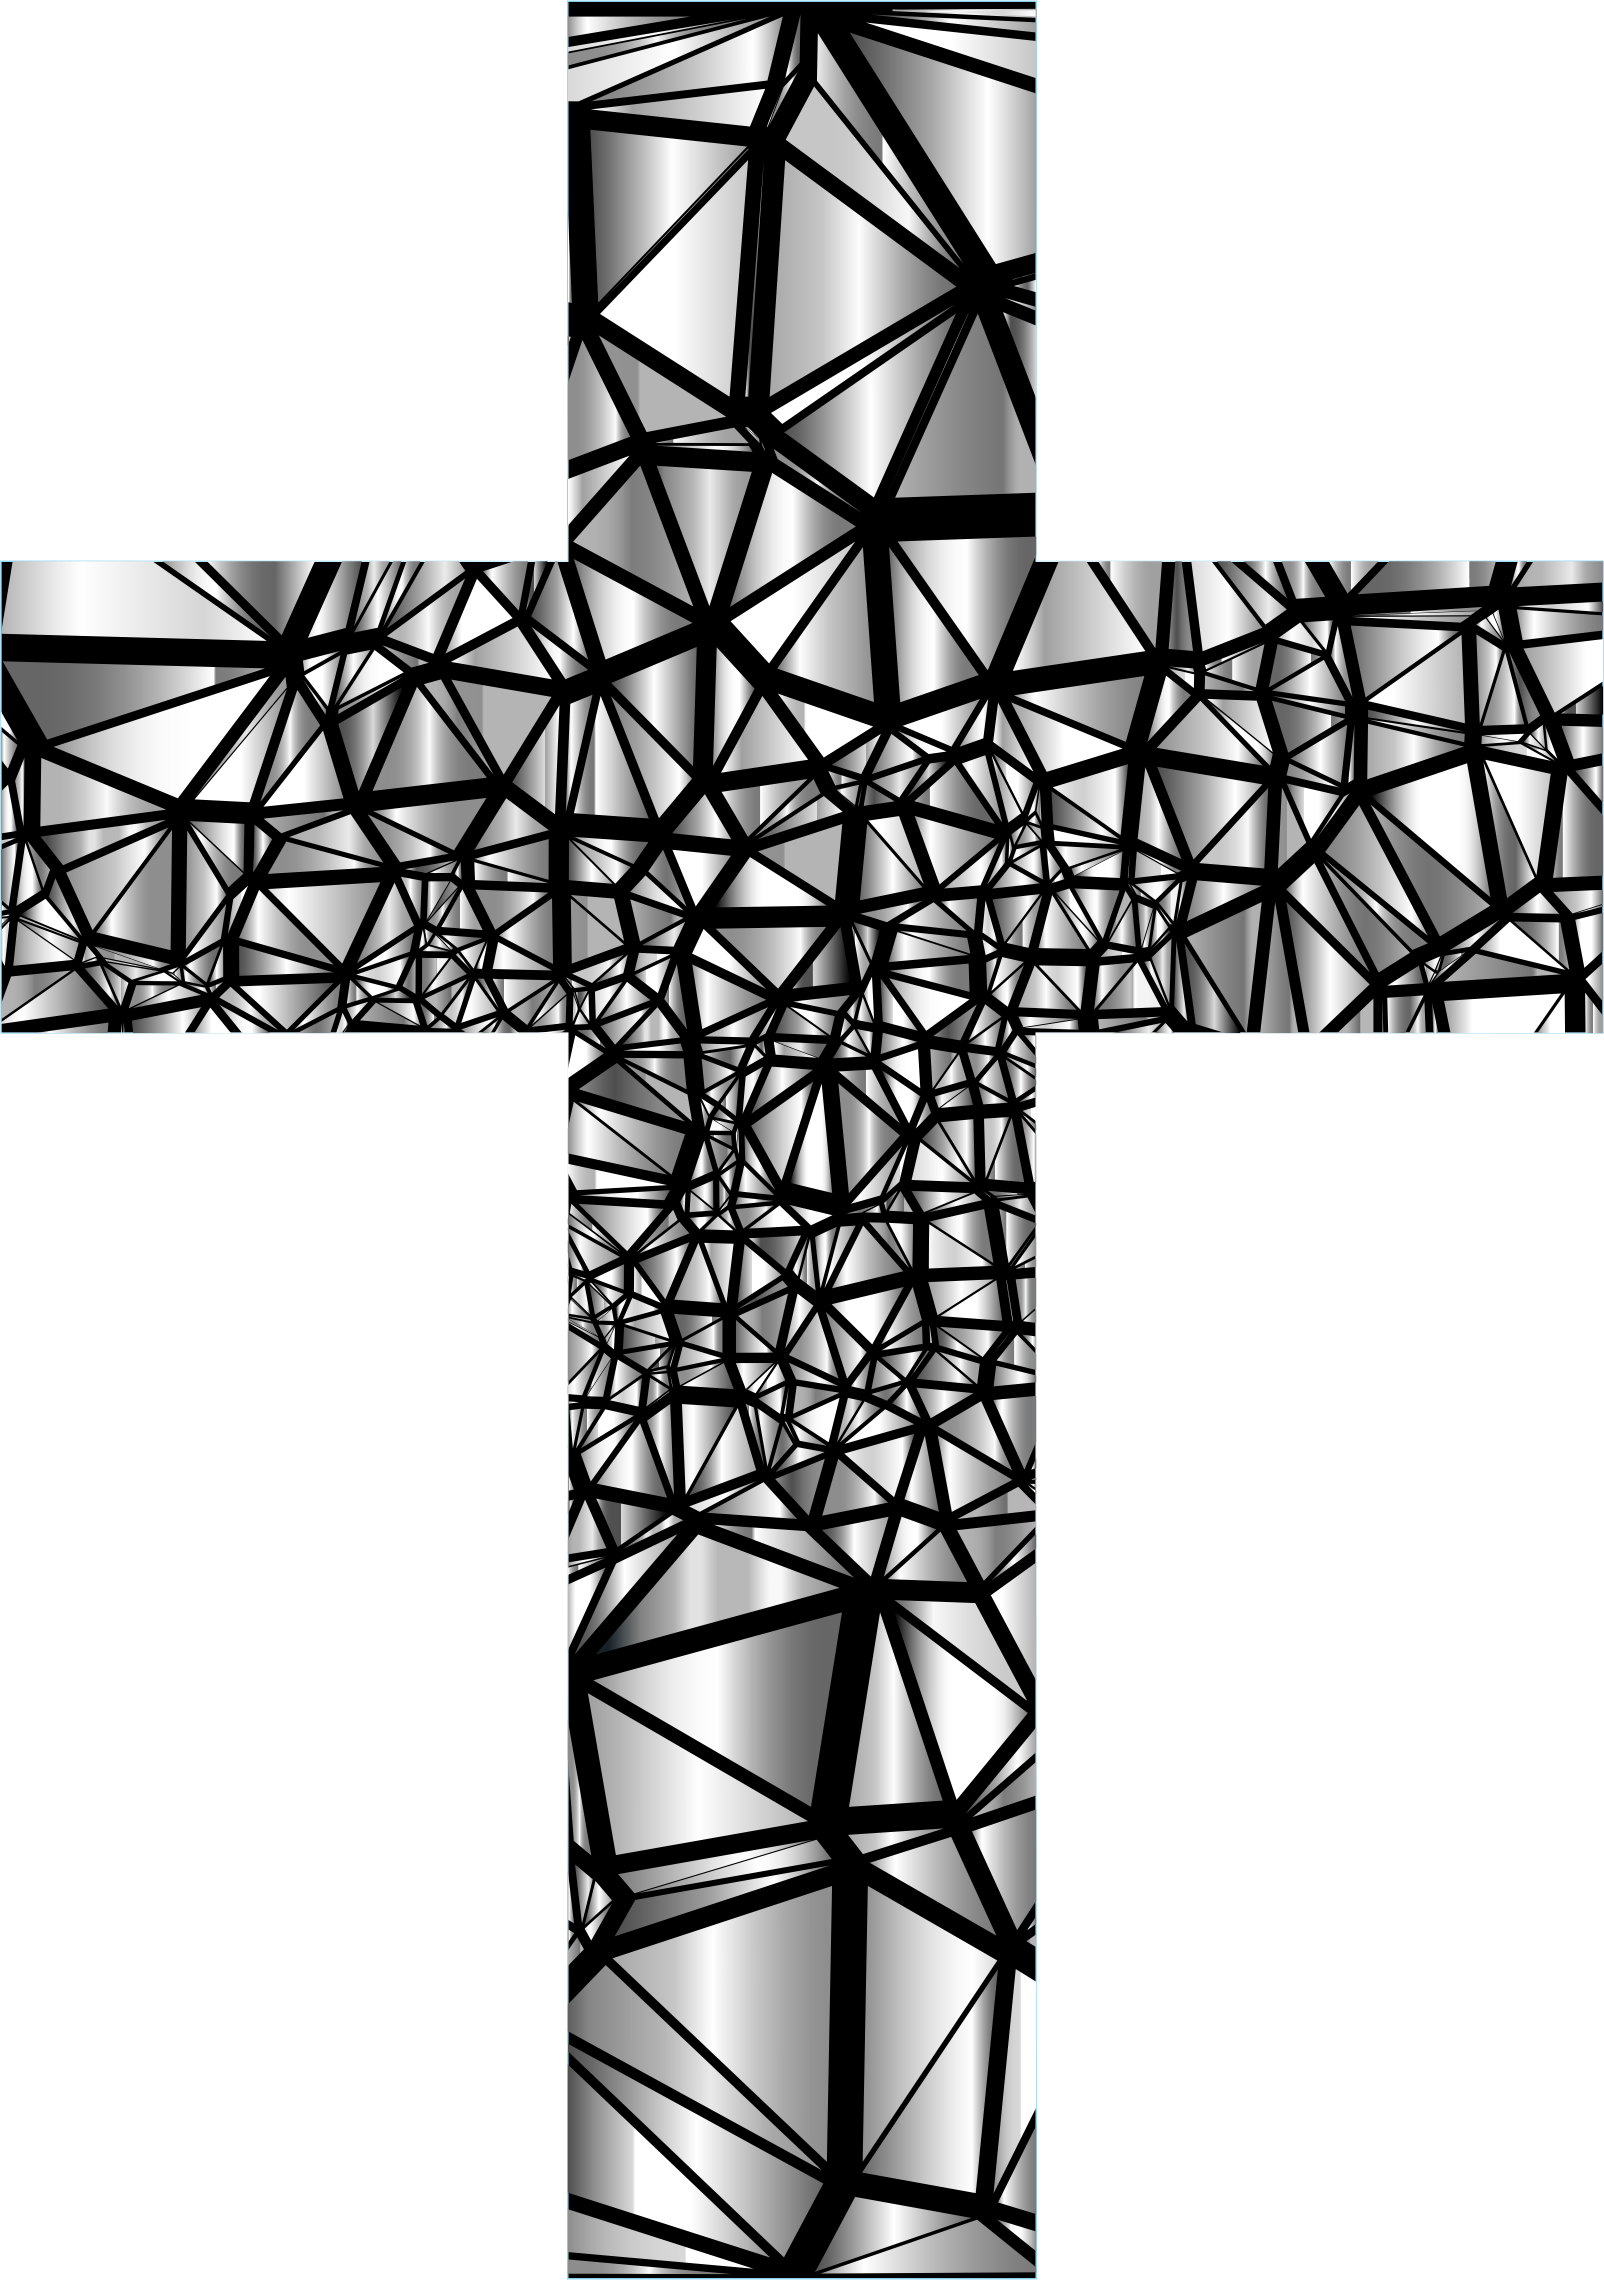 Low Poly Stained Glass Cross 4 by GDJ